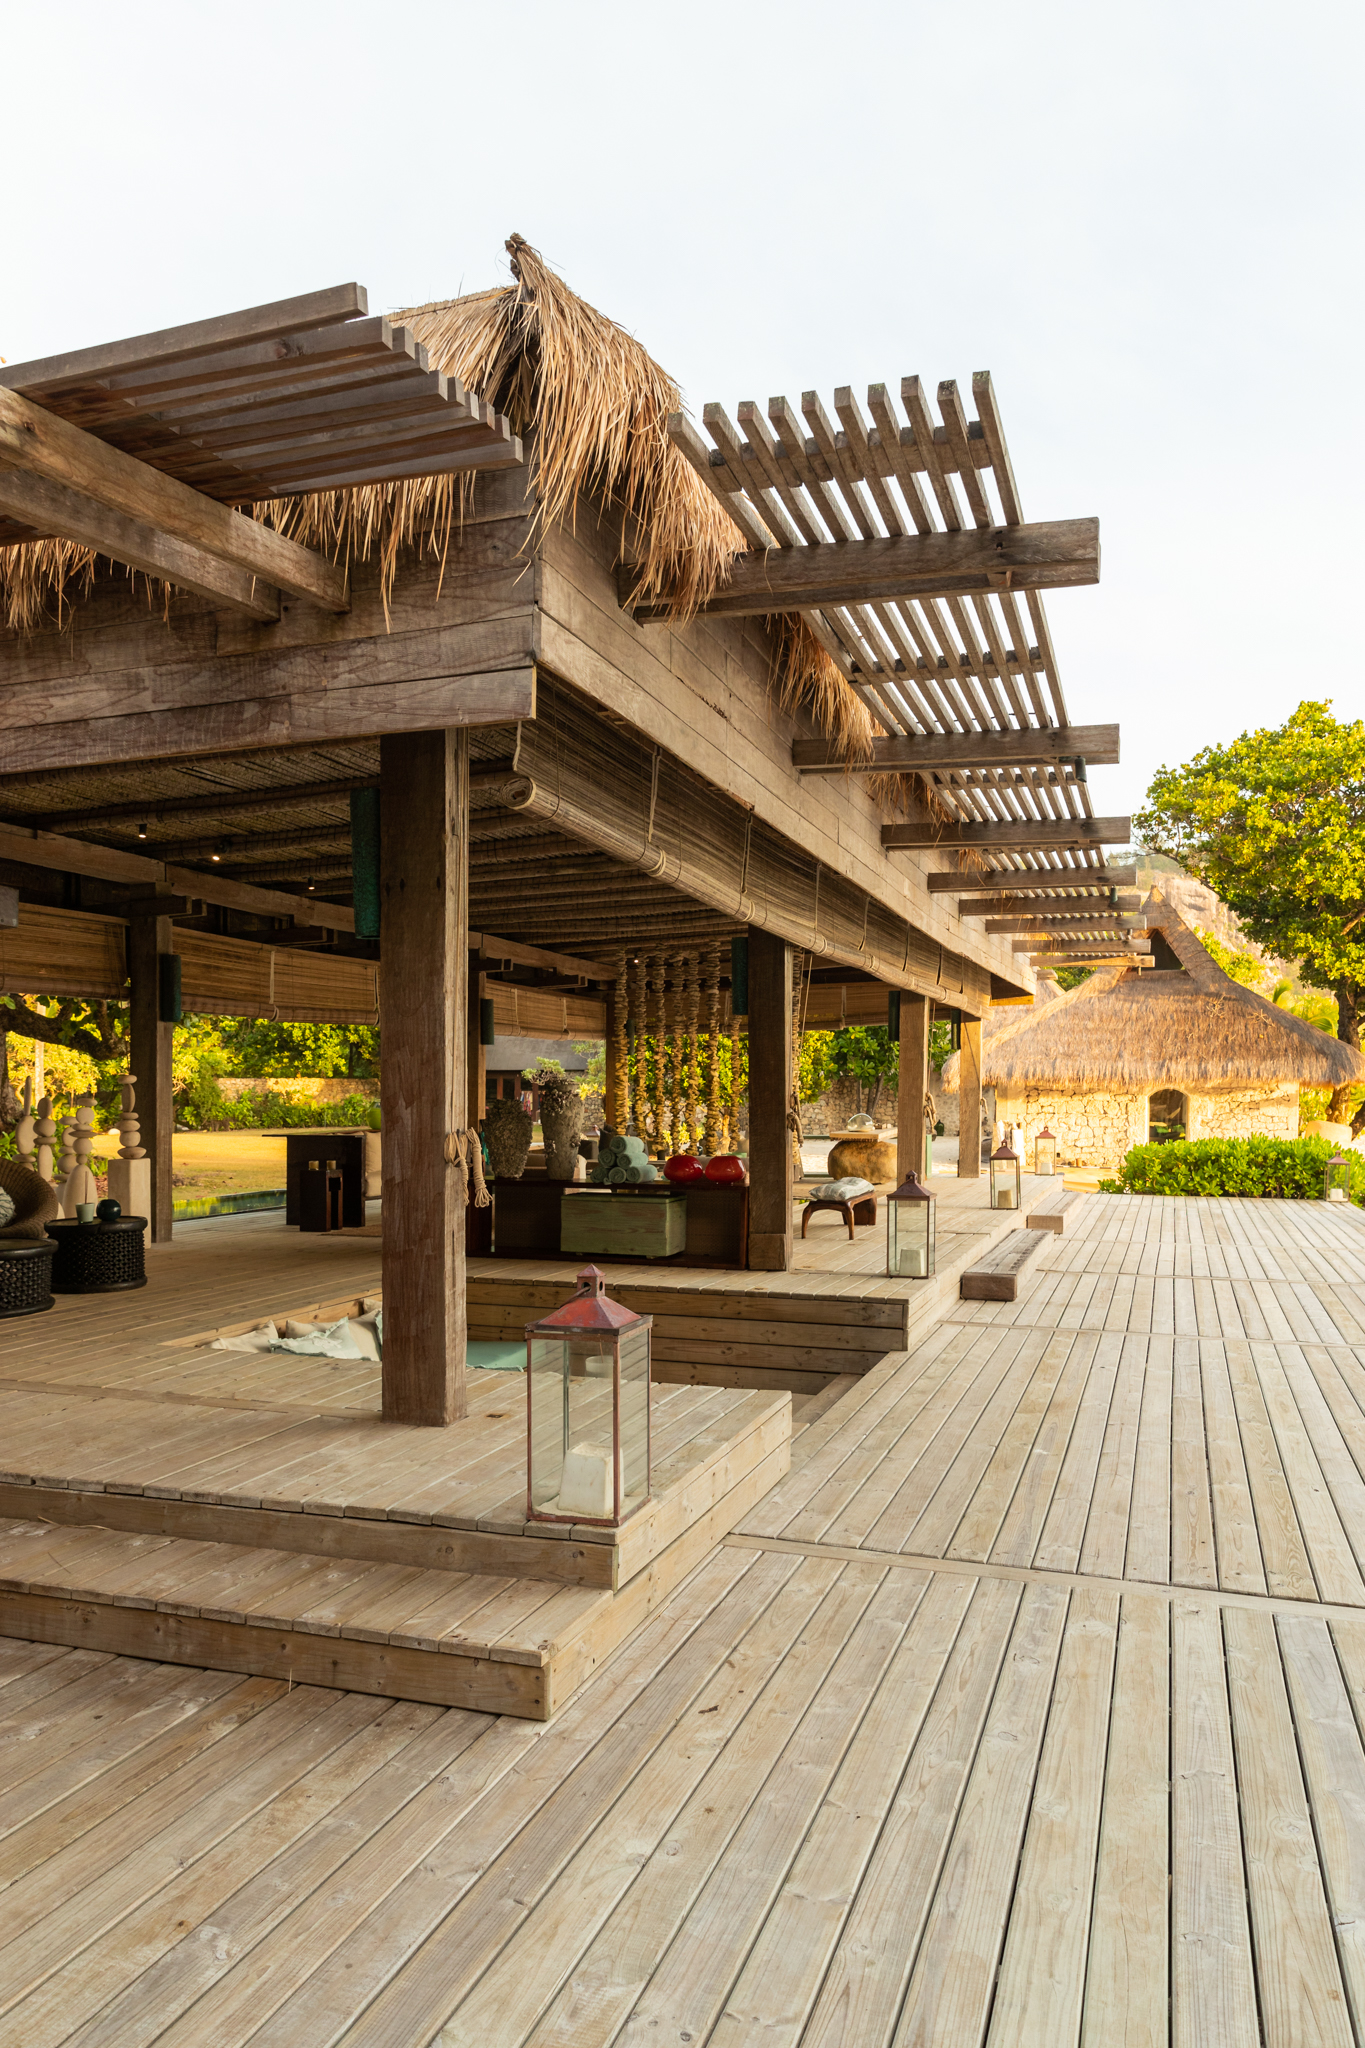 The Piazza on North Island has a comfortable lounge sunken into the wooden decks under a ylang ylang roof